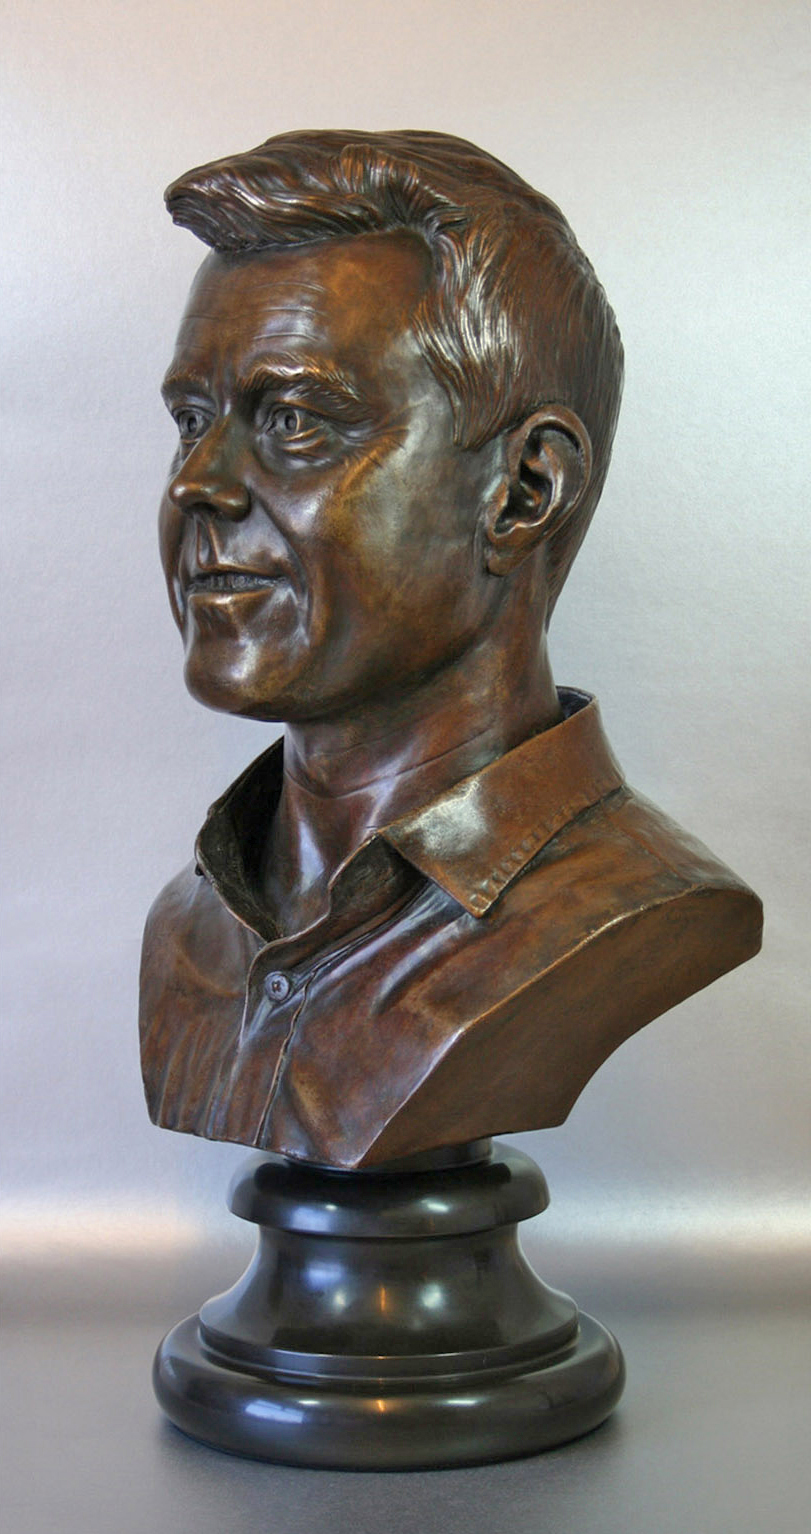 Head sculpture bronze